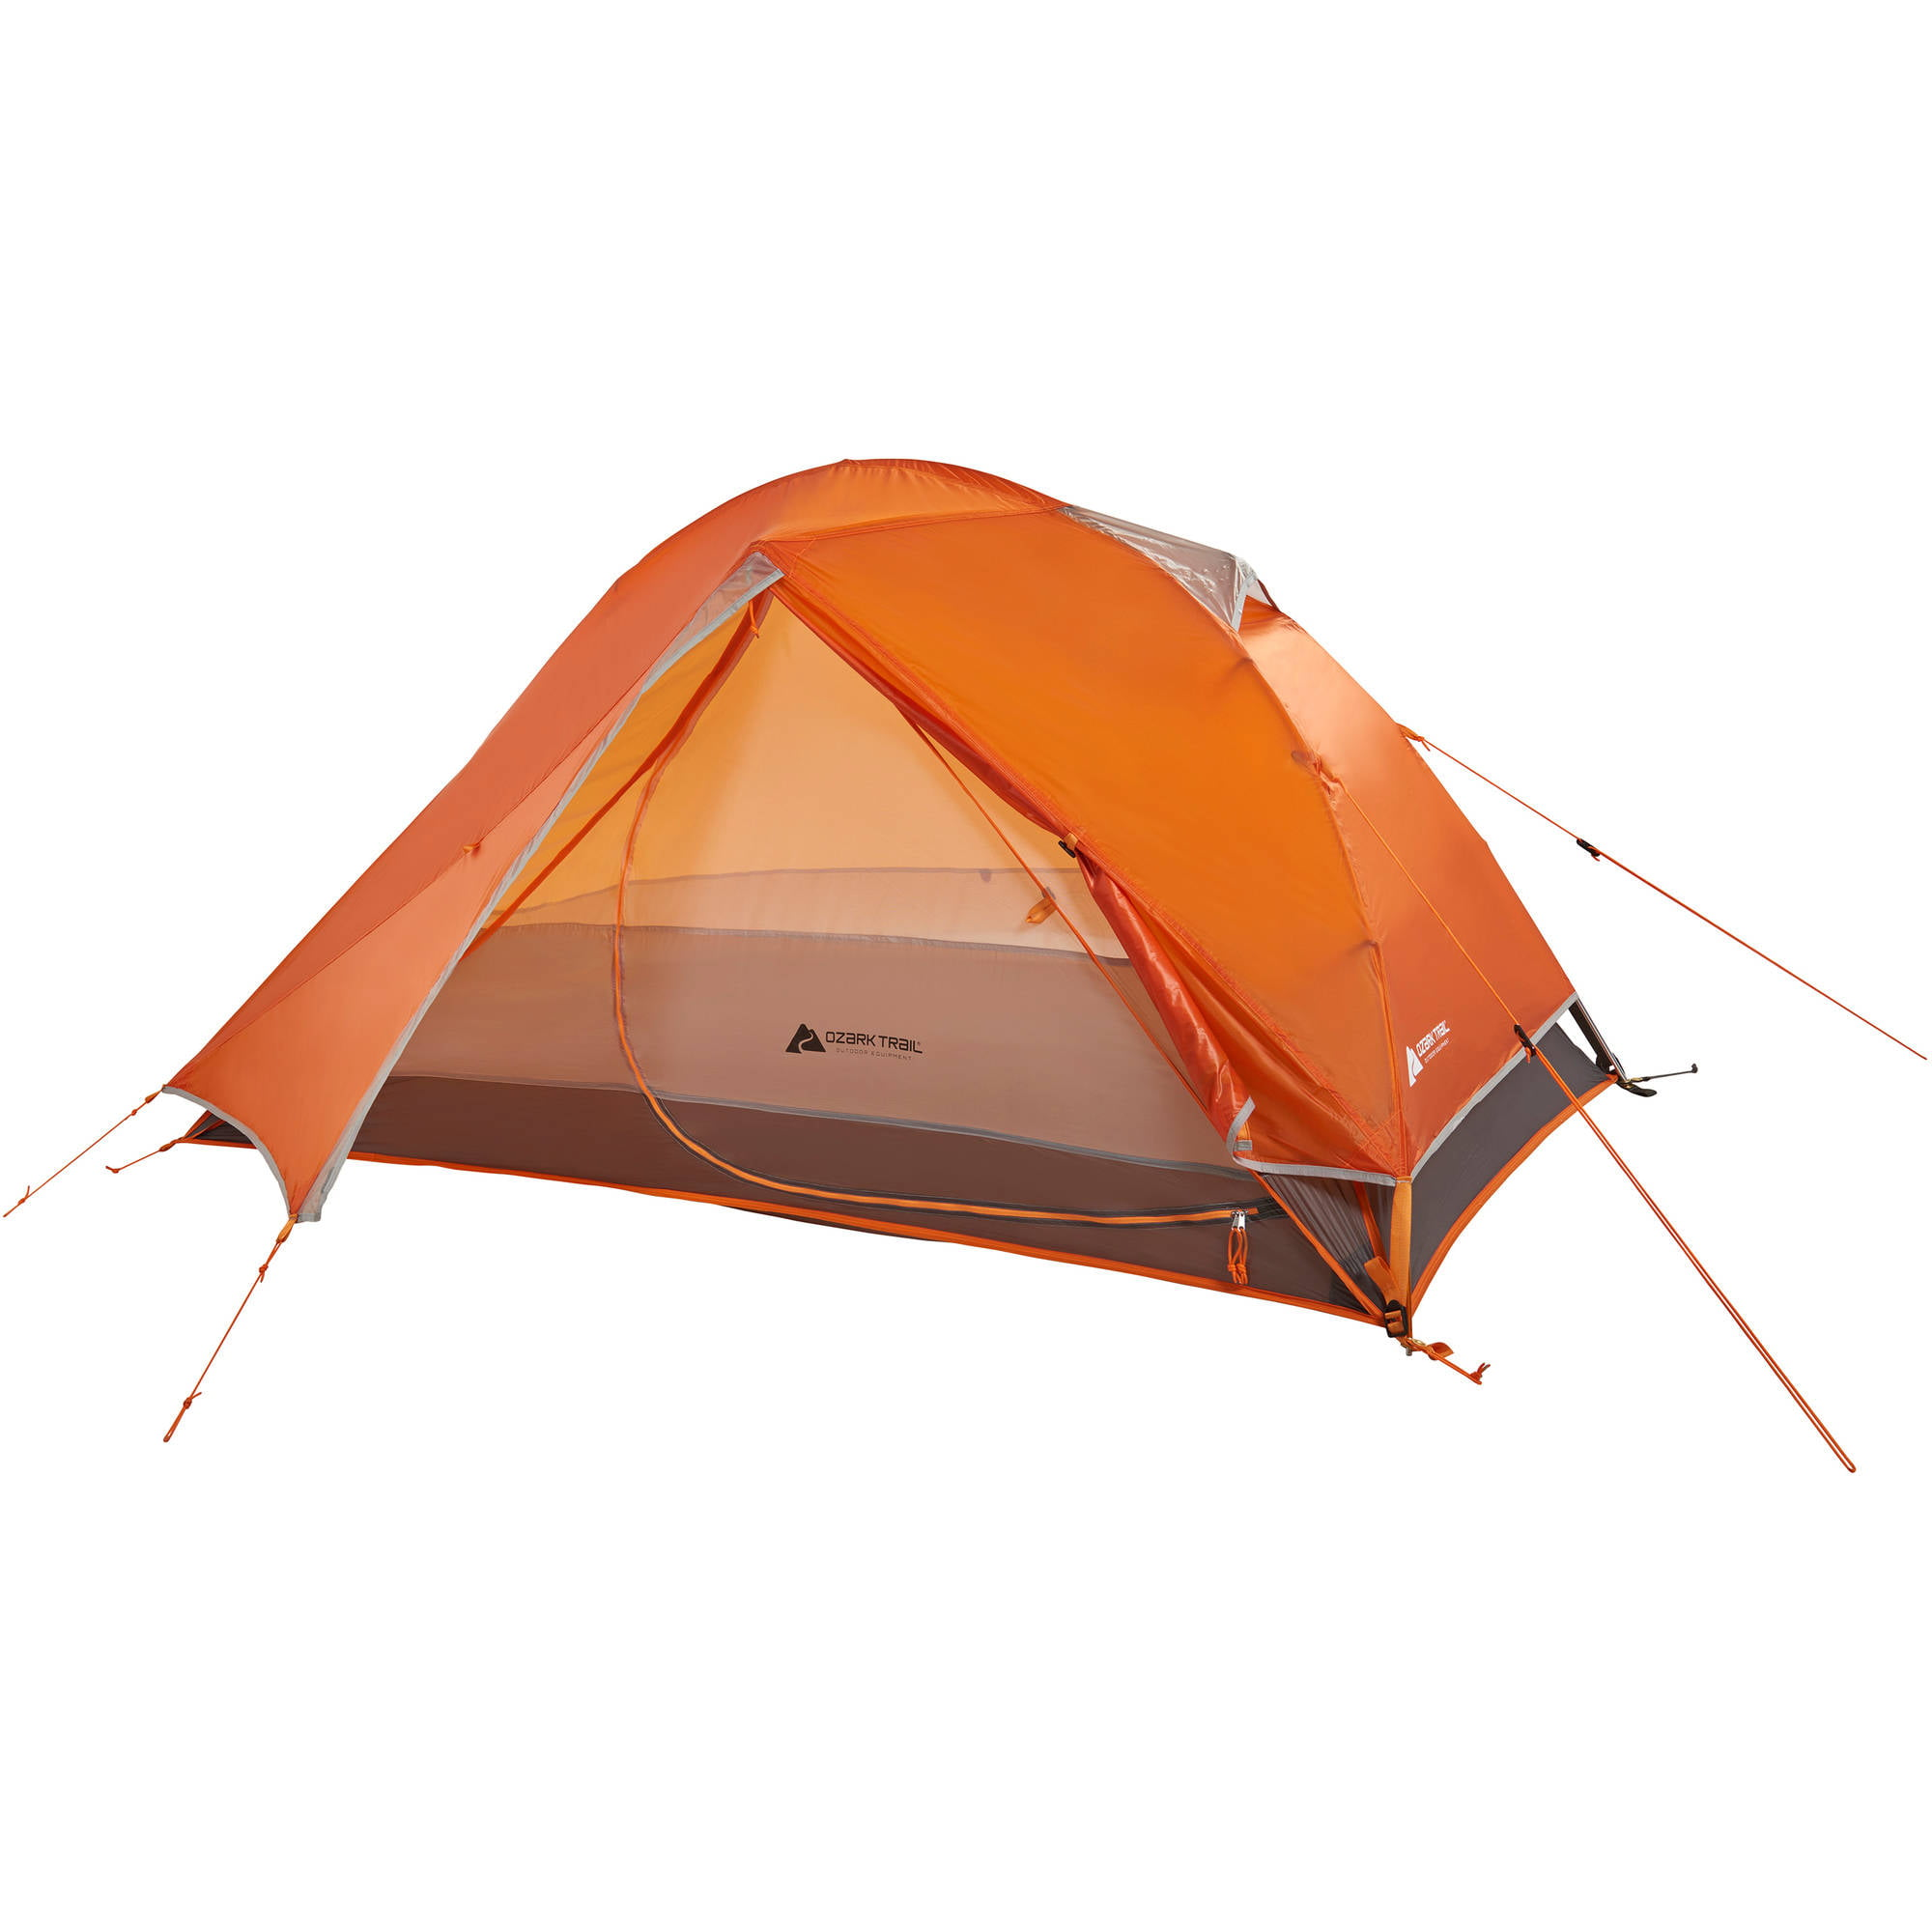 Ozark Trail 43 Ounce Ultralight Backpacking Tent, Sleeps 1 by CAMPEX BD LIMITED